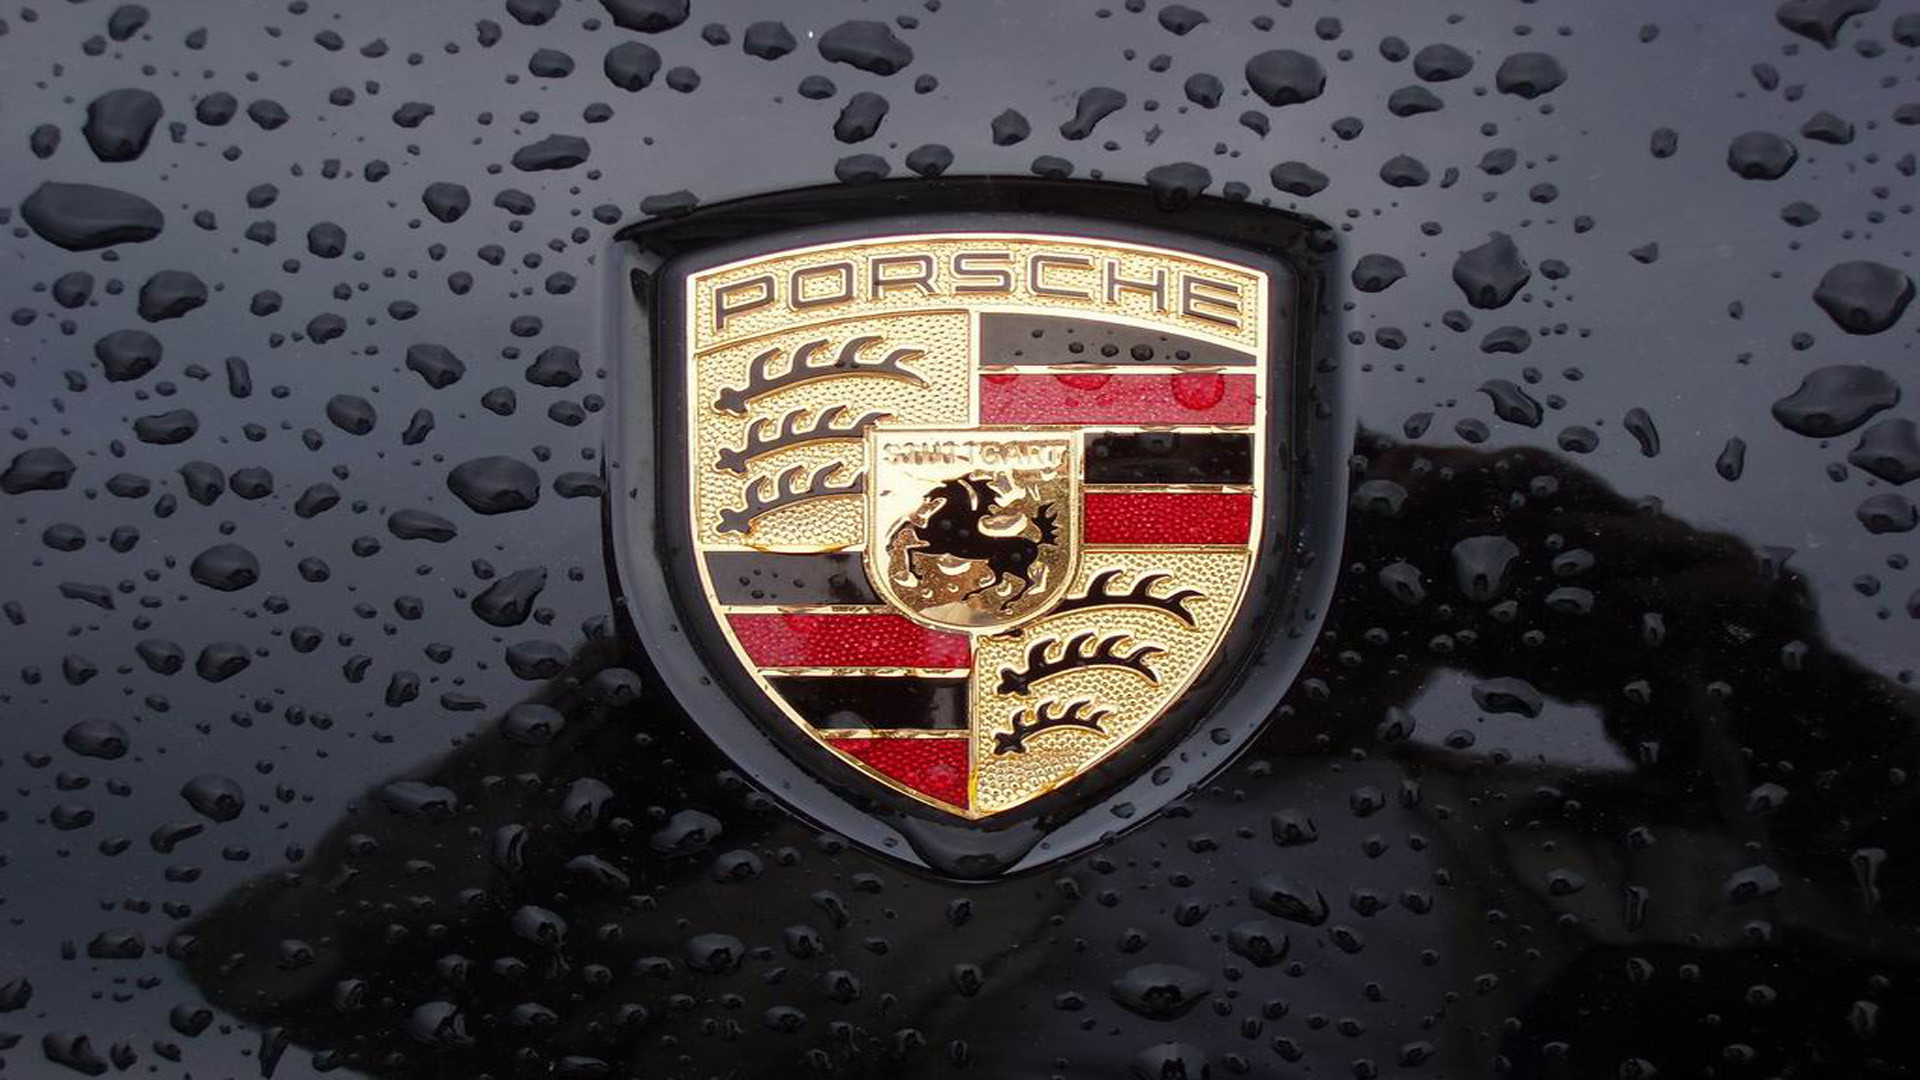 1920x1080 Porsche Logo Wallpapers Pictures Images